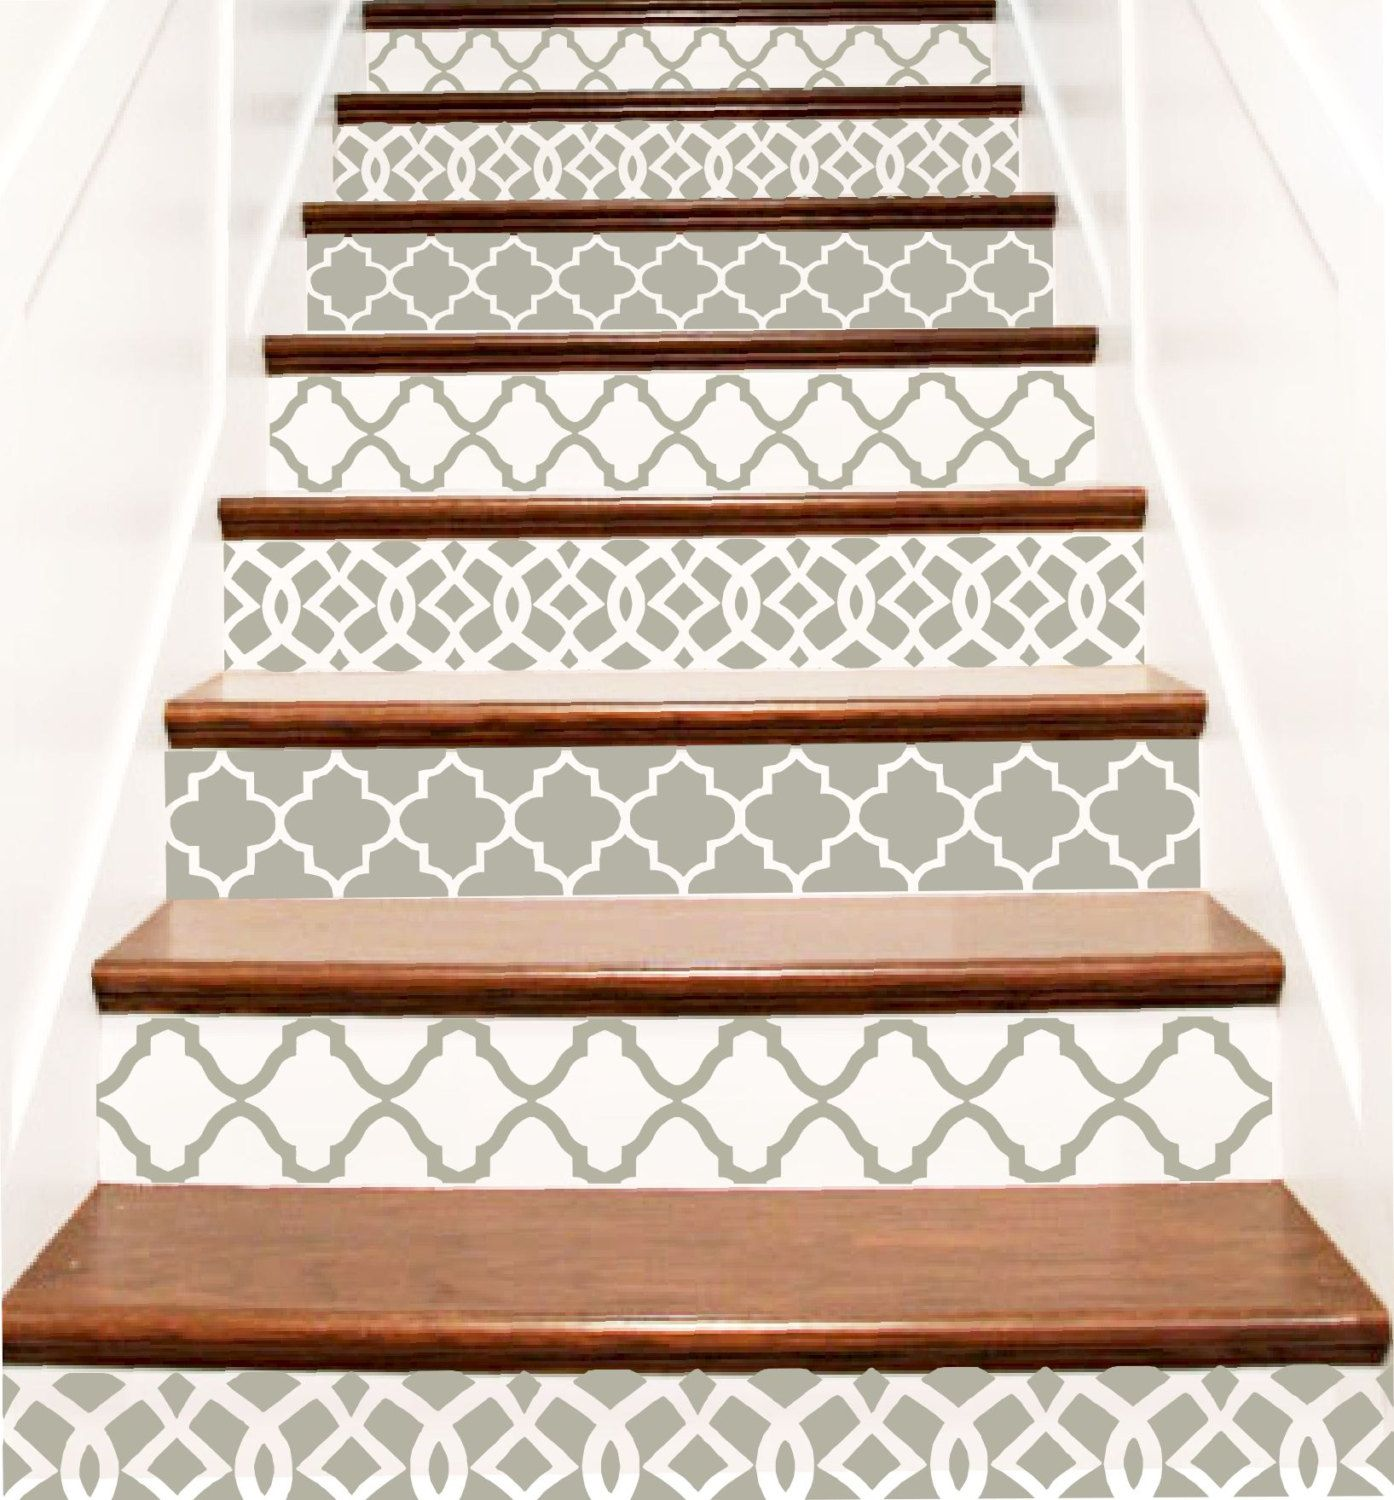 decorative vinyl stair tile decals trellis decor steps riser stickers your choice of color. Black Bedroom Furniture Sets. Home Design Ideas